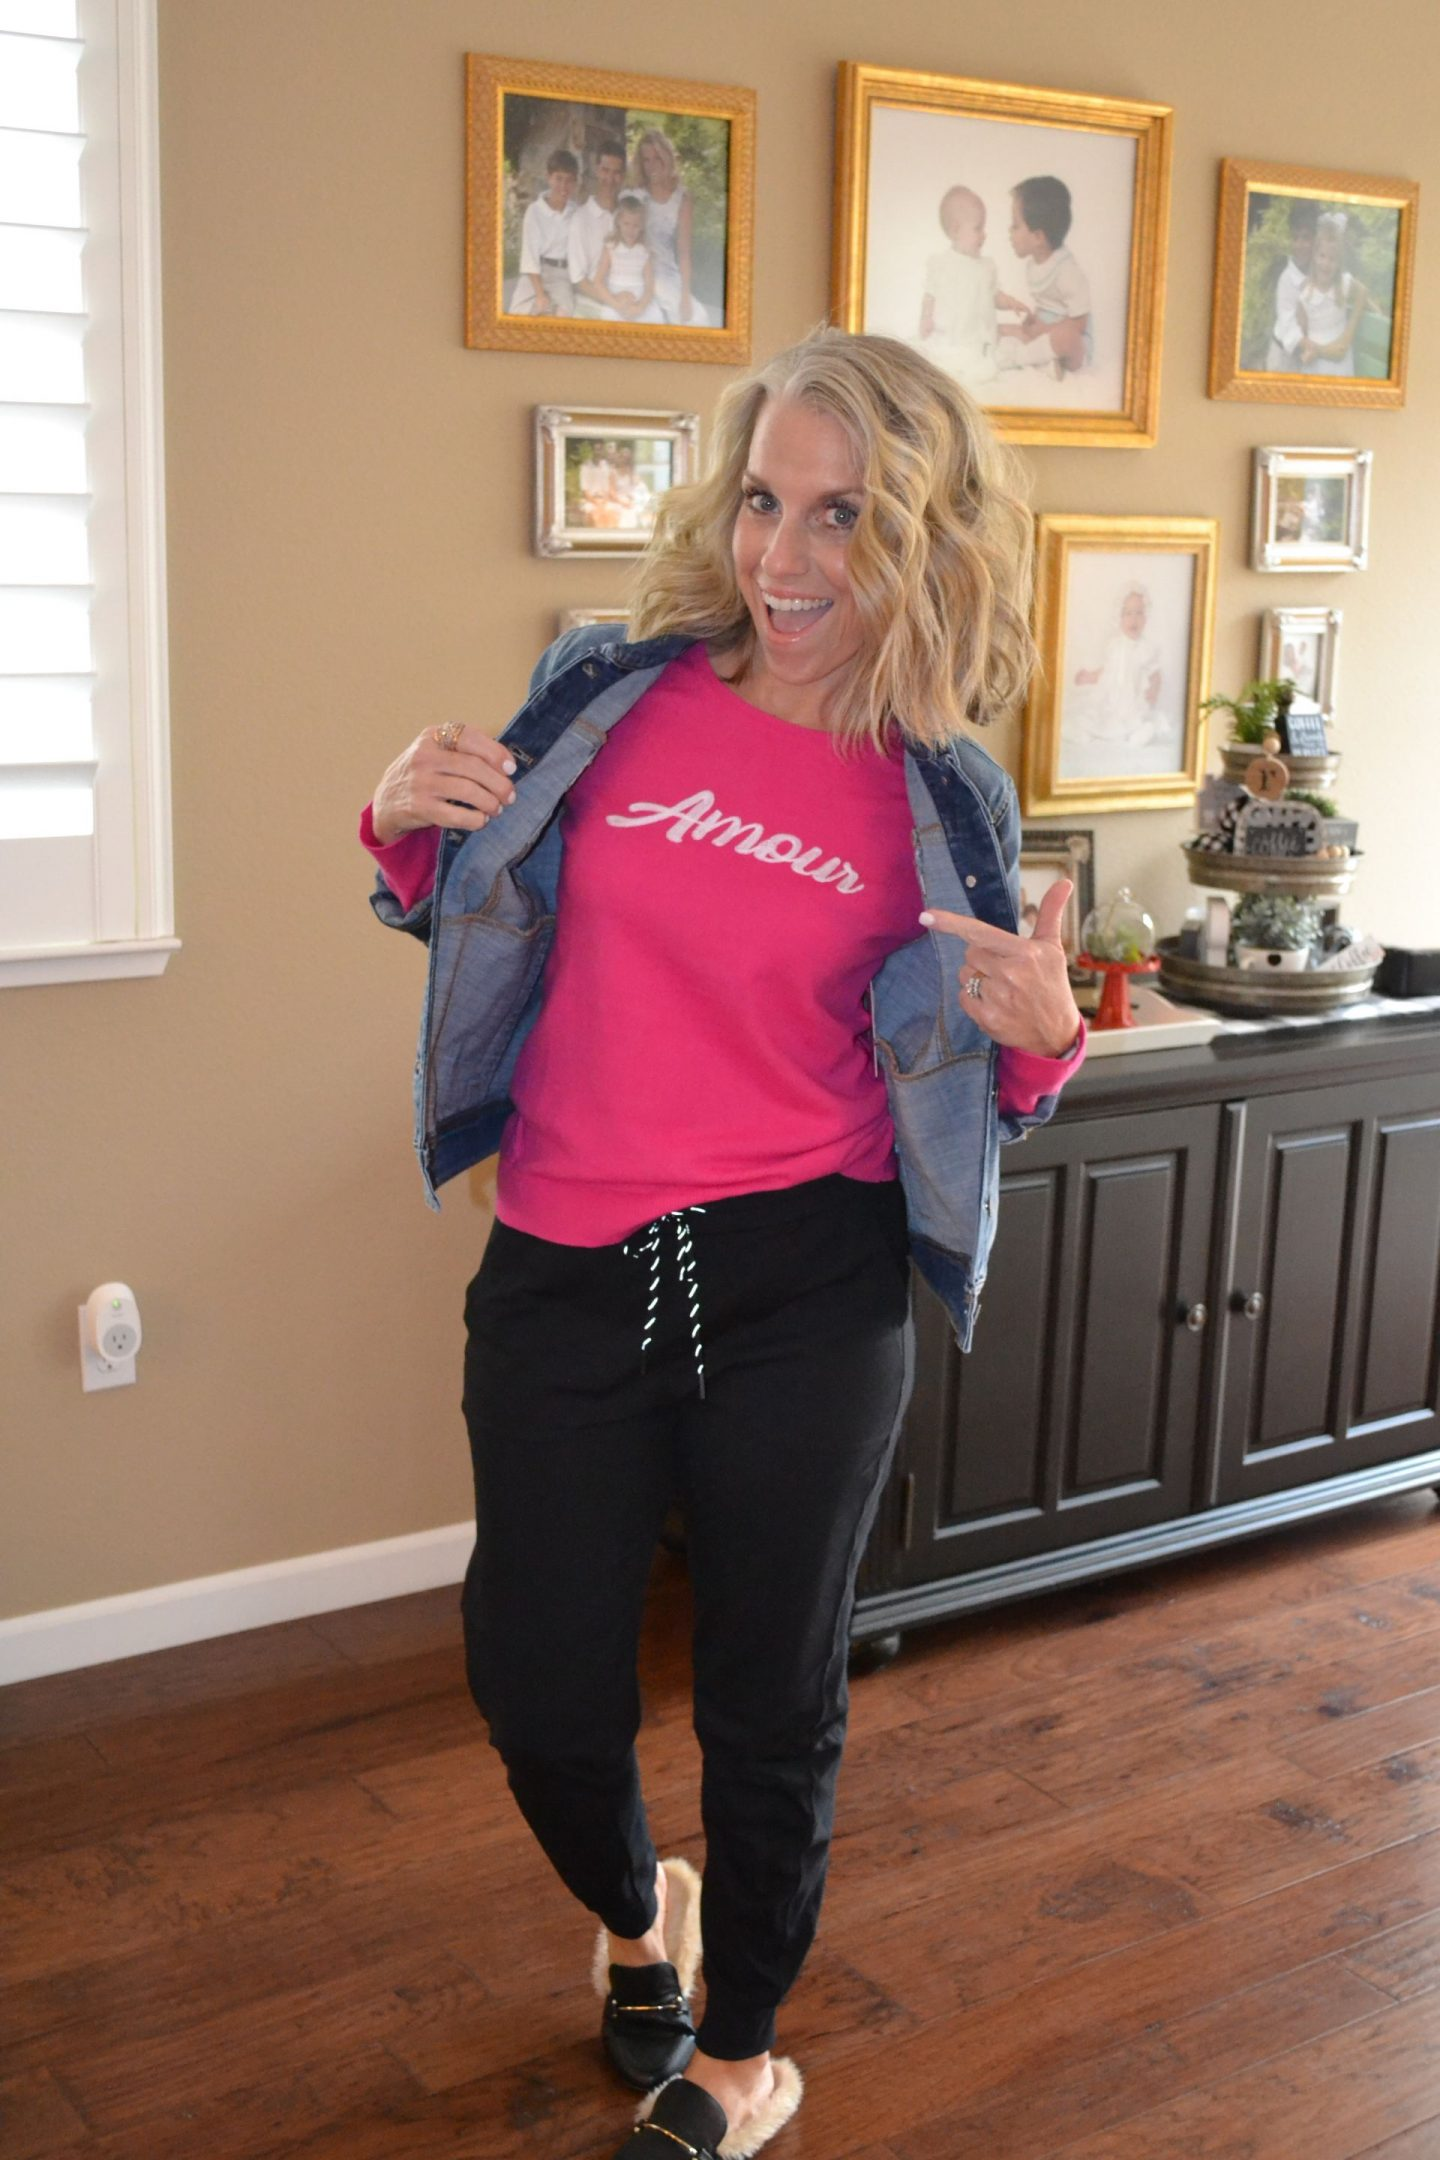 Amour sweater from What you may have missed this week